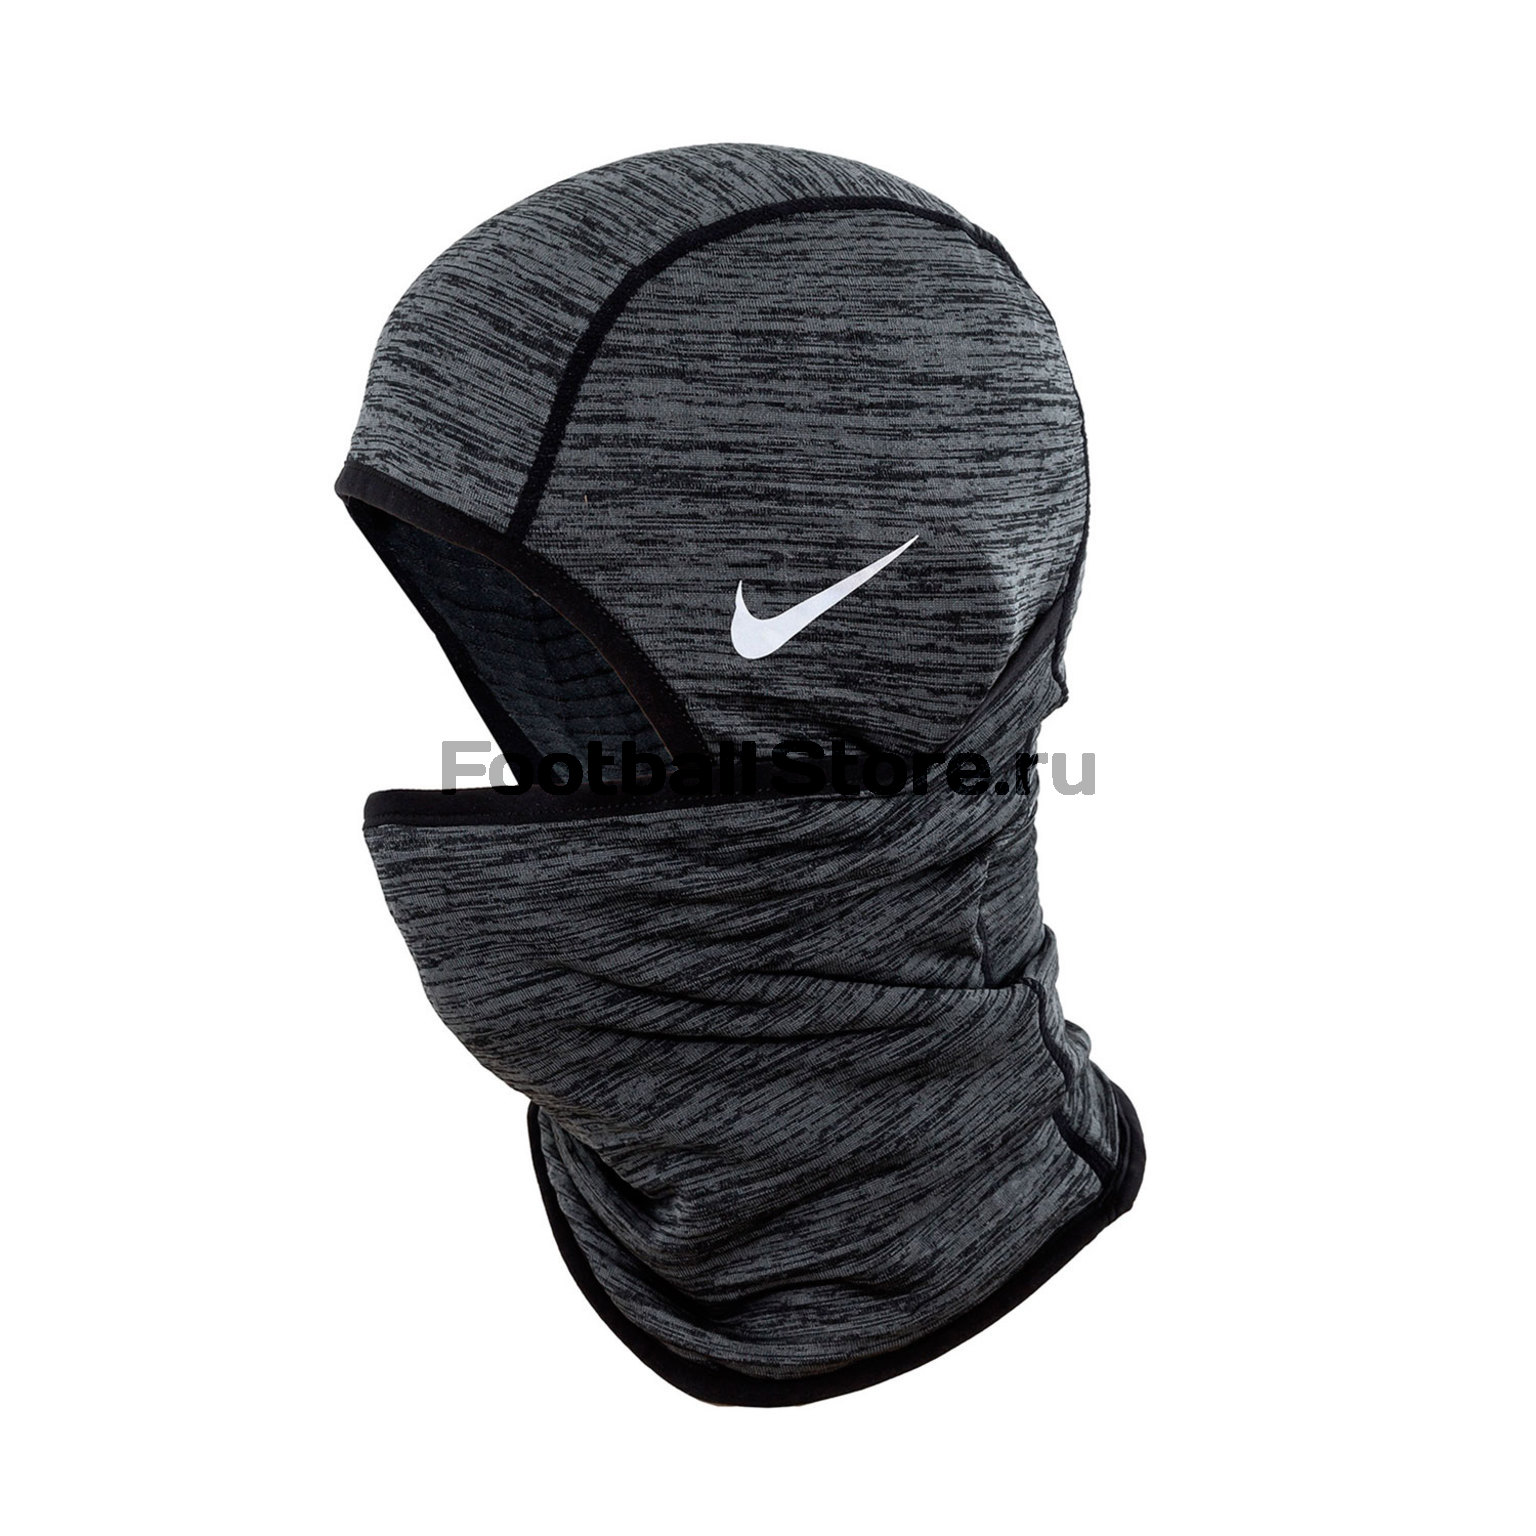 Балаклава Nike Run Terma Sphere Hood N.RA.53.028.NS повязка на шею гейтор nike reversible neck warmer n wa 53 072 os